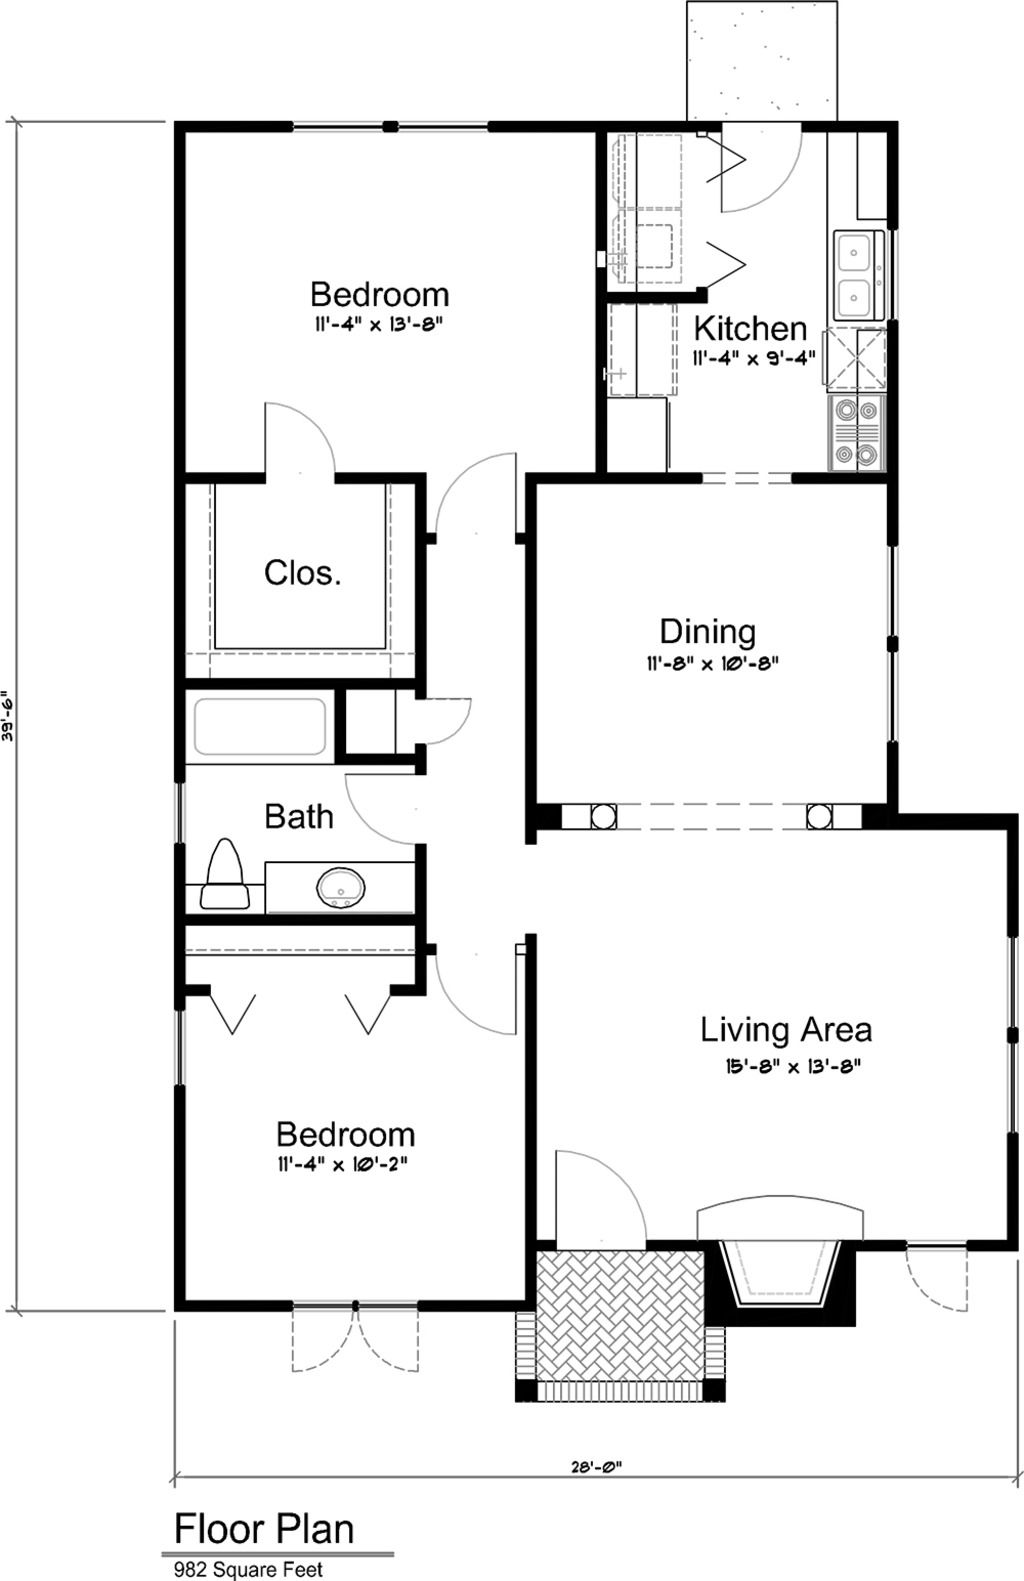 2 bed, 1 bath, 982 sq  ft  Put a long normal closet on the